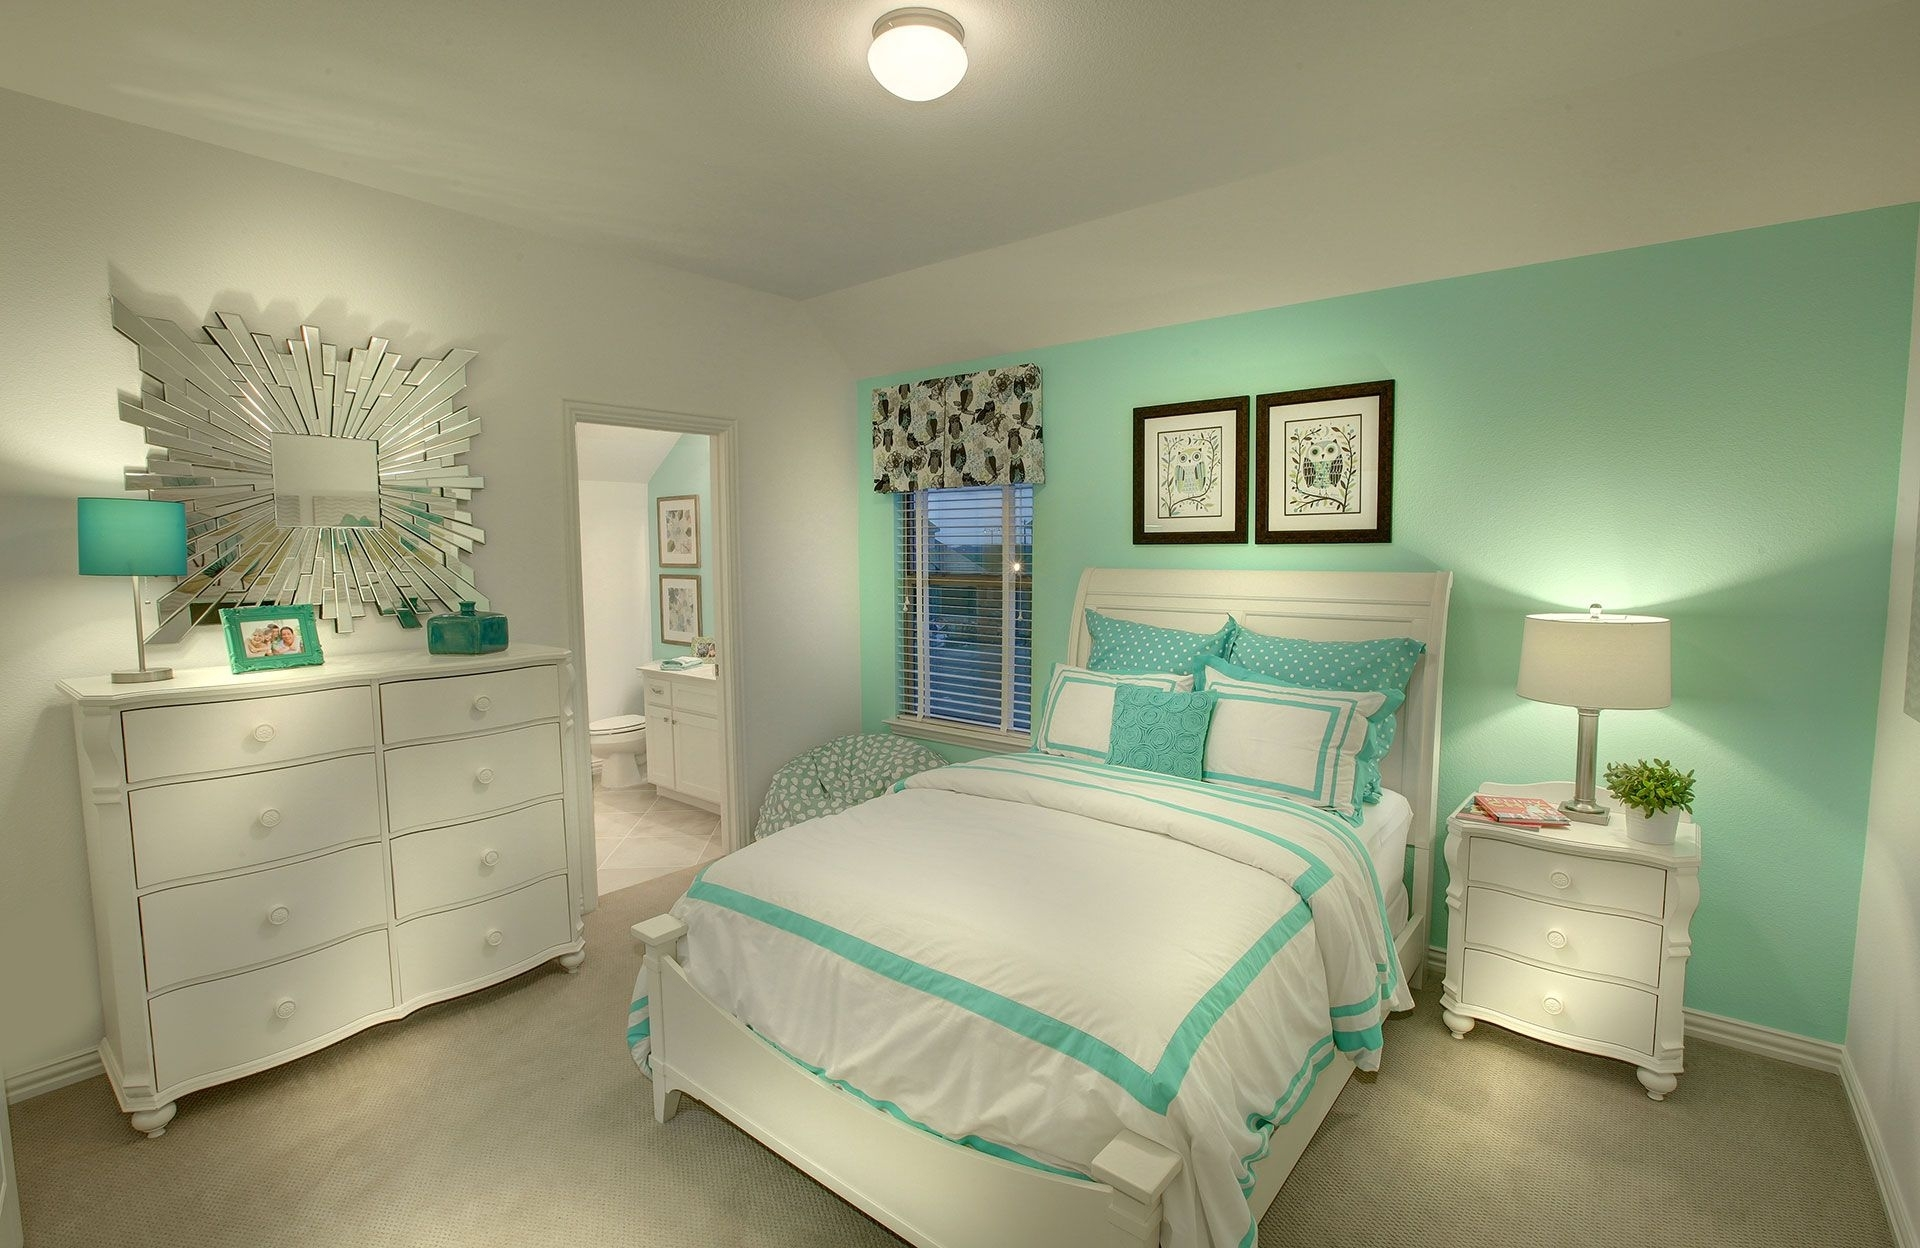 Bedroom Mint Green Bedroom Luxury Bedroom Design Grey And Seafoam In Latest Green Room Wall Accents (View 14 of 15)